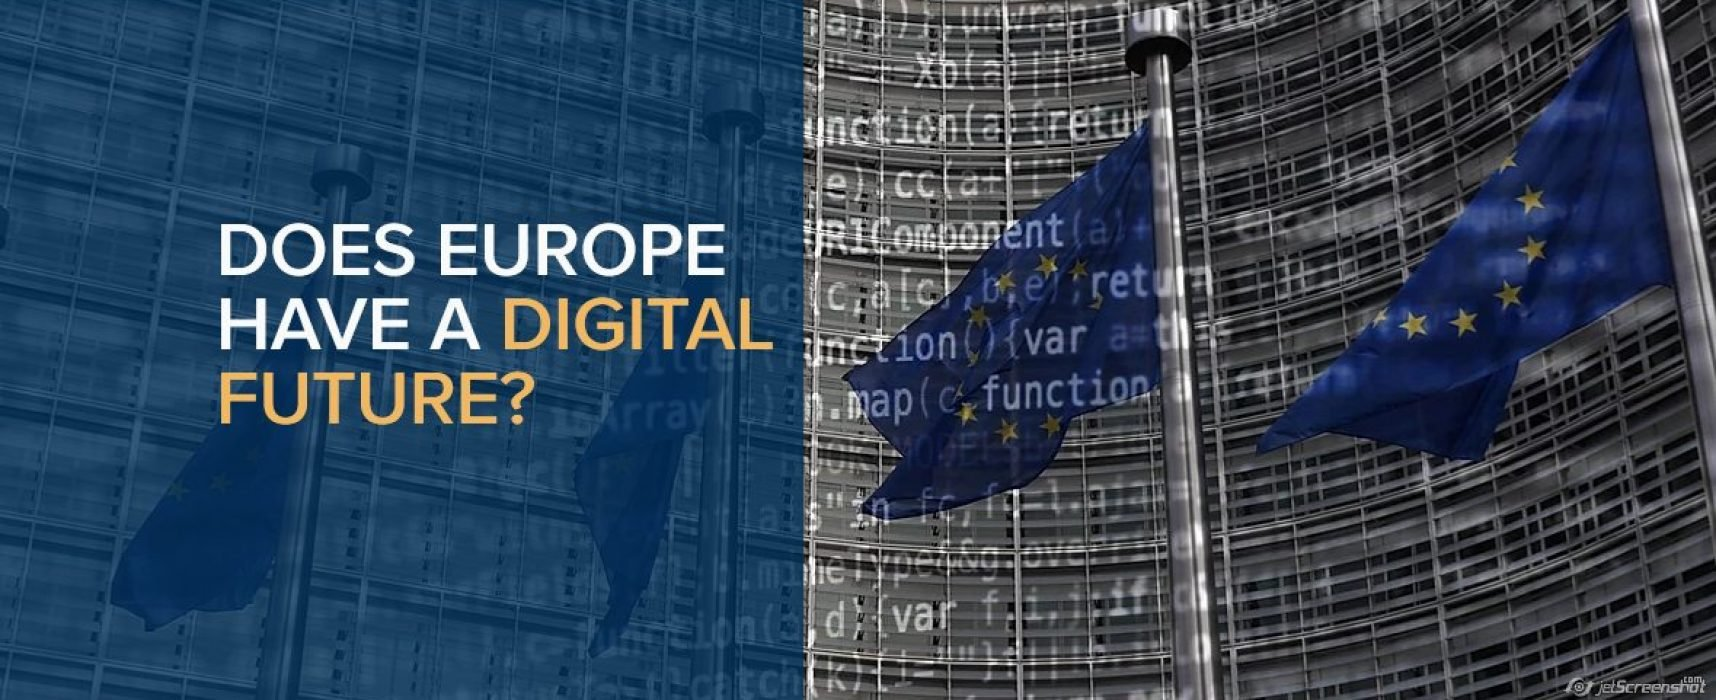 Does Europe have a digital future?